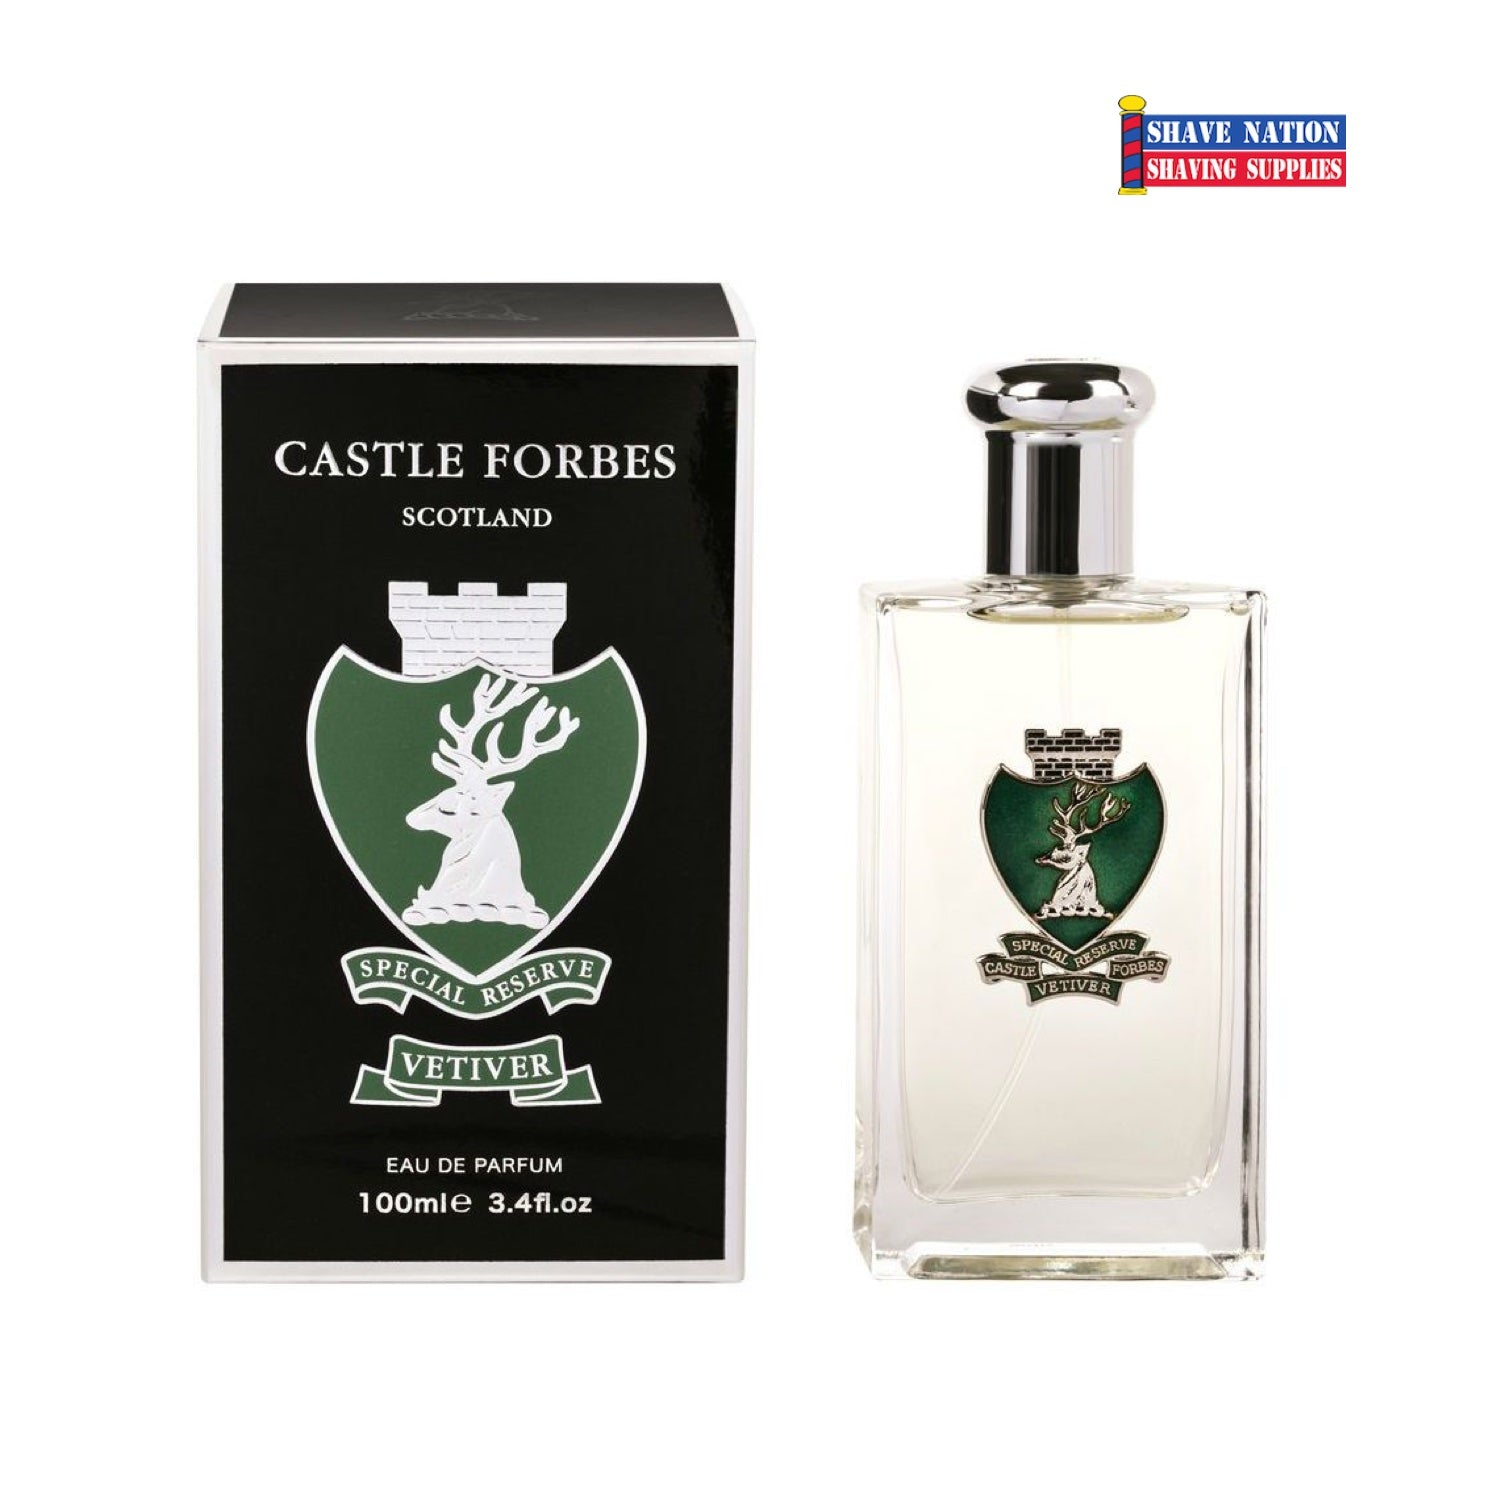 Castle Forbes VETIVER Eau De Parfum Aftershave